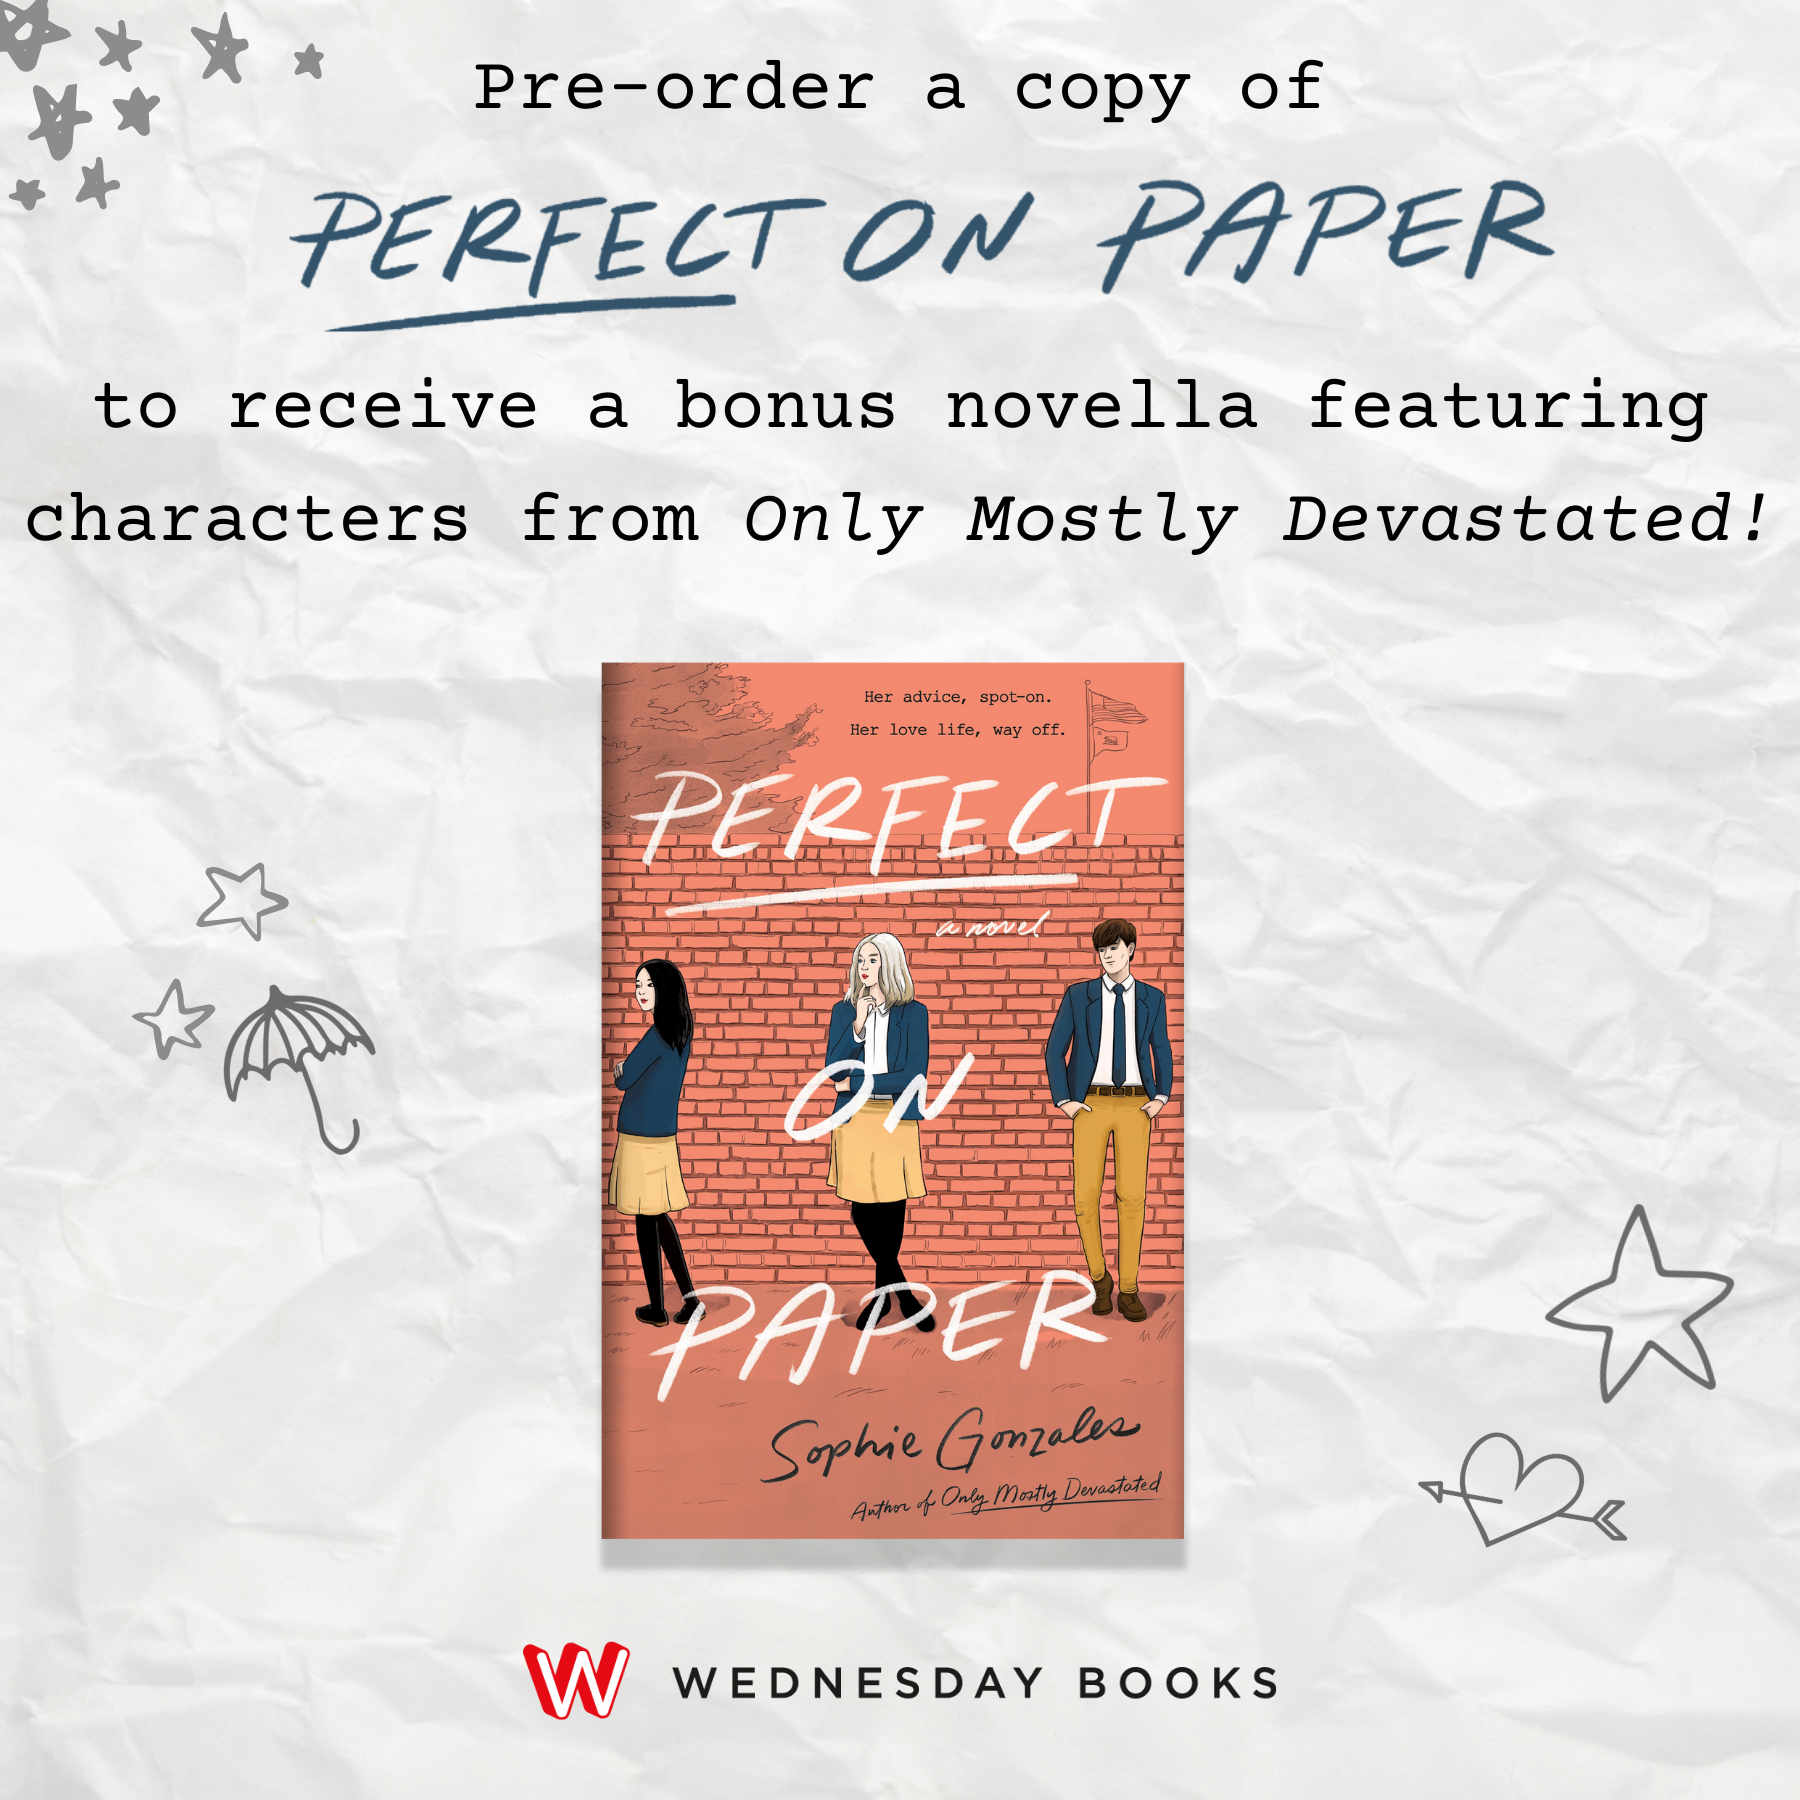 Perfect on Paper Preorder Incentive